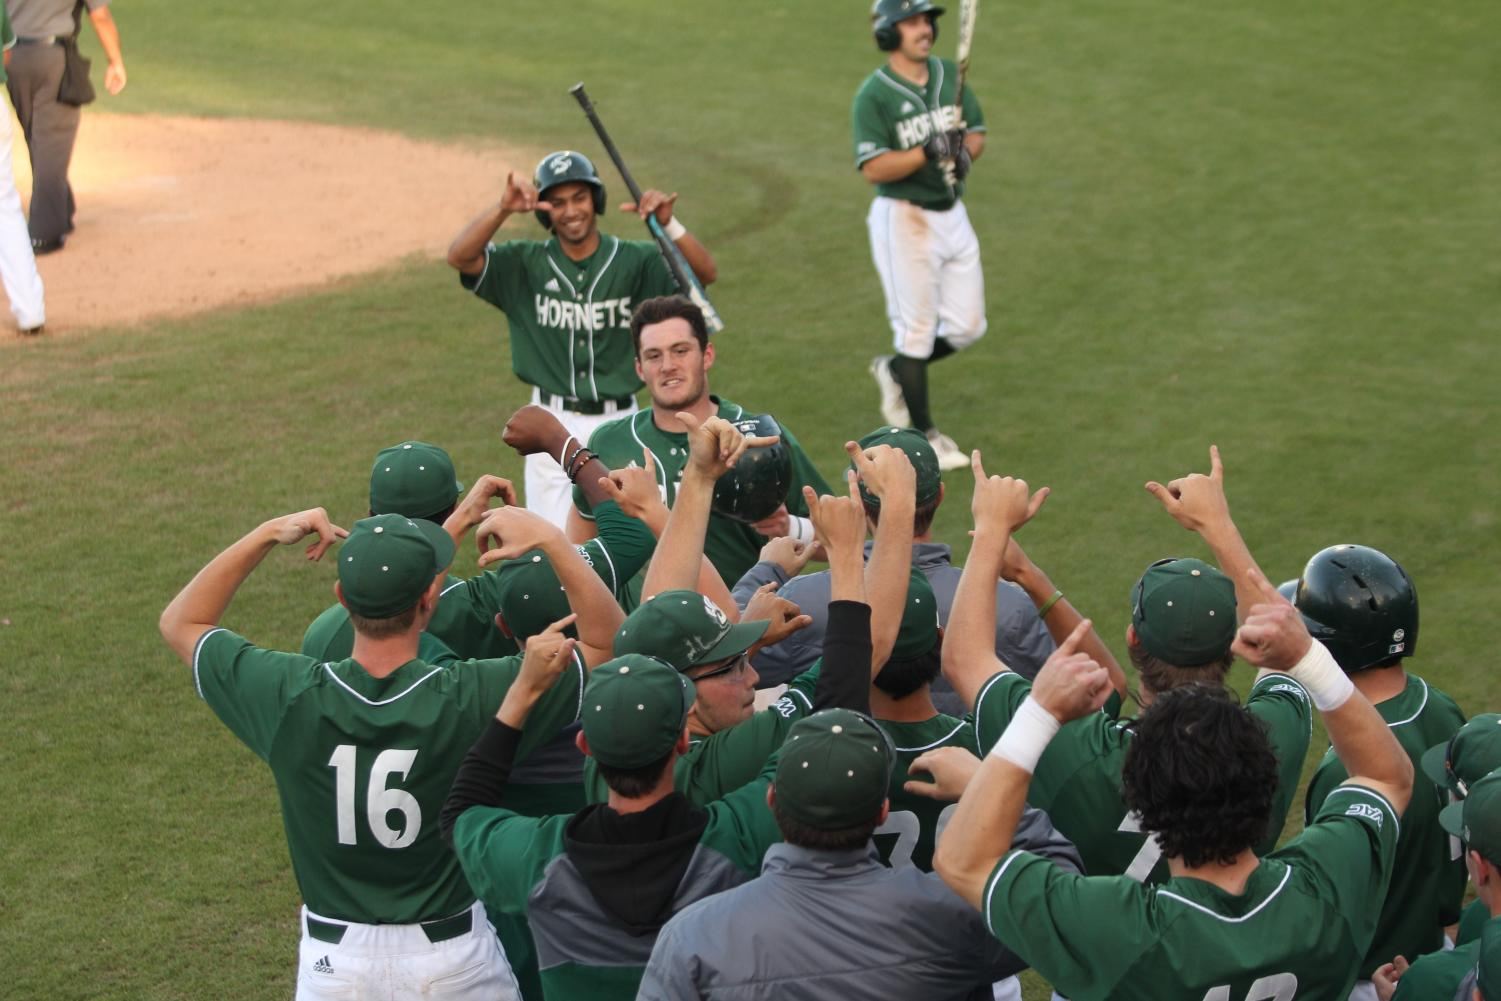 Sacramento State freshman second baseman and Hawaii native Keith Torres, middle, celebrates behind his teammates as they hold up the Shaka sign after he hit his first career home run against Chicago State at John Smith Field on Saturday, April 7, 2018. The Hornets defeated the Cougars 13-1.